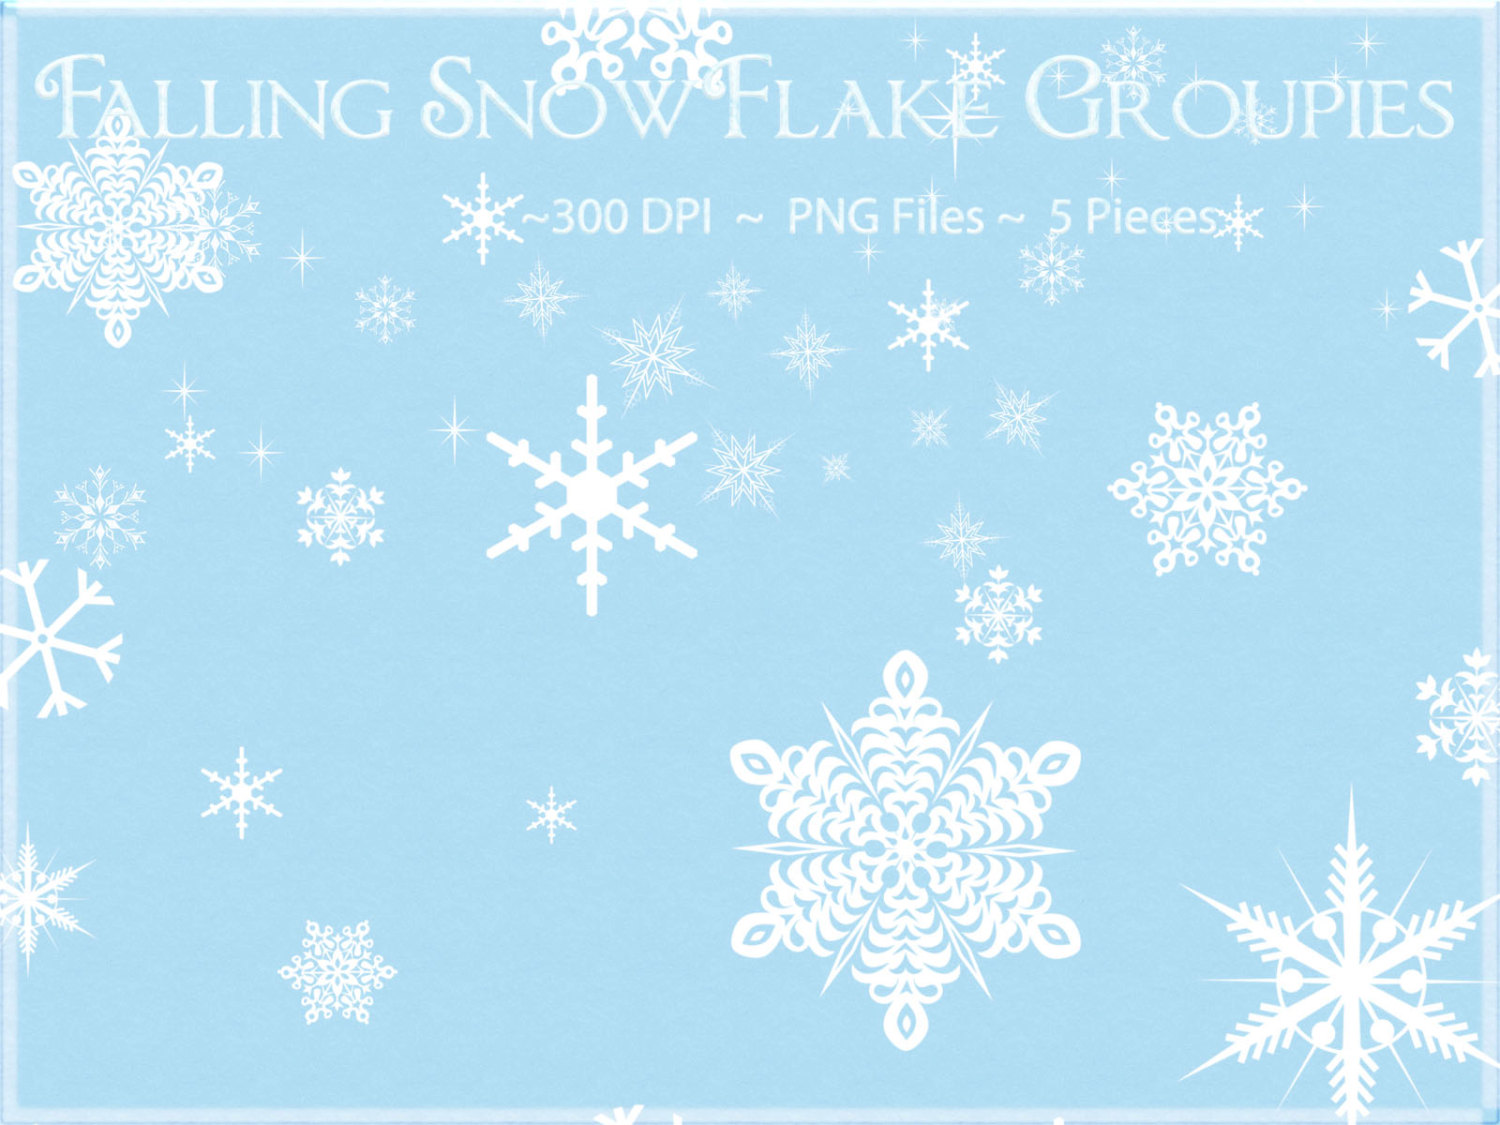 Snowflake Clipart, Falling Snowflake Clipart, Winter Clipart, Snow.